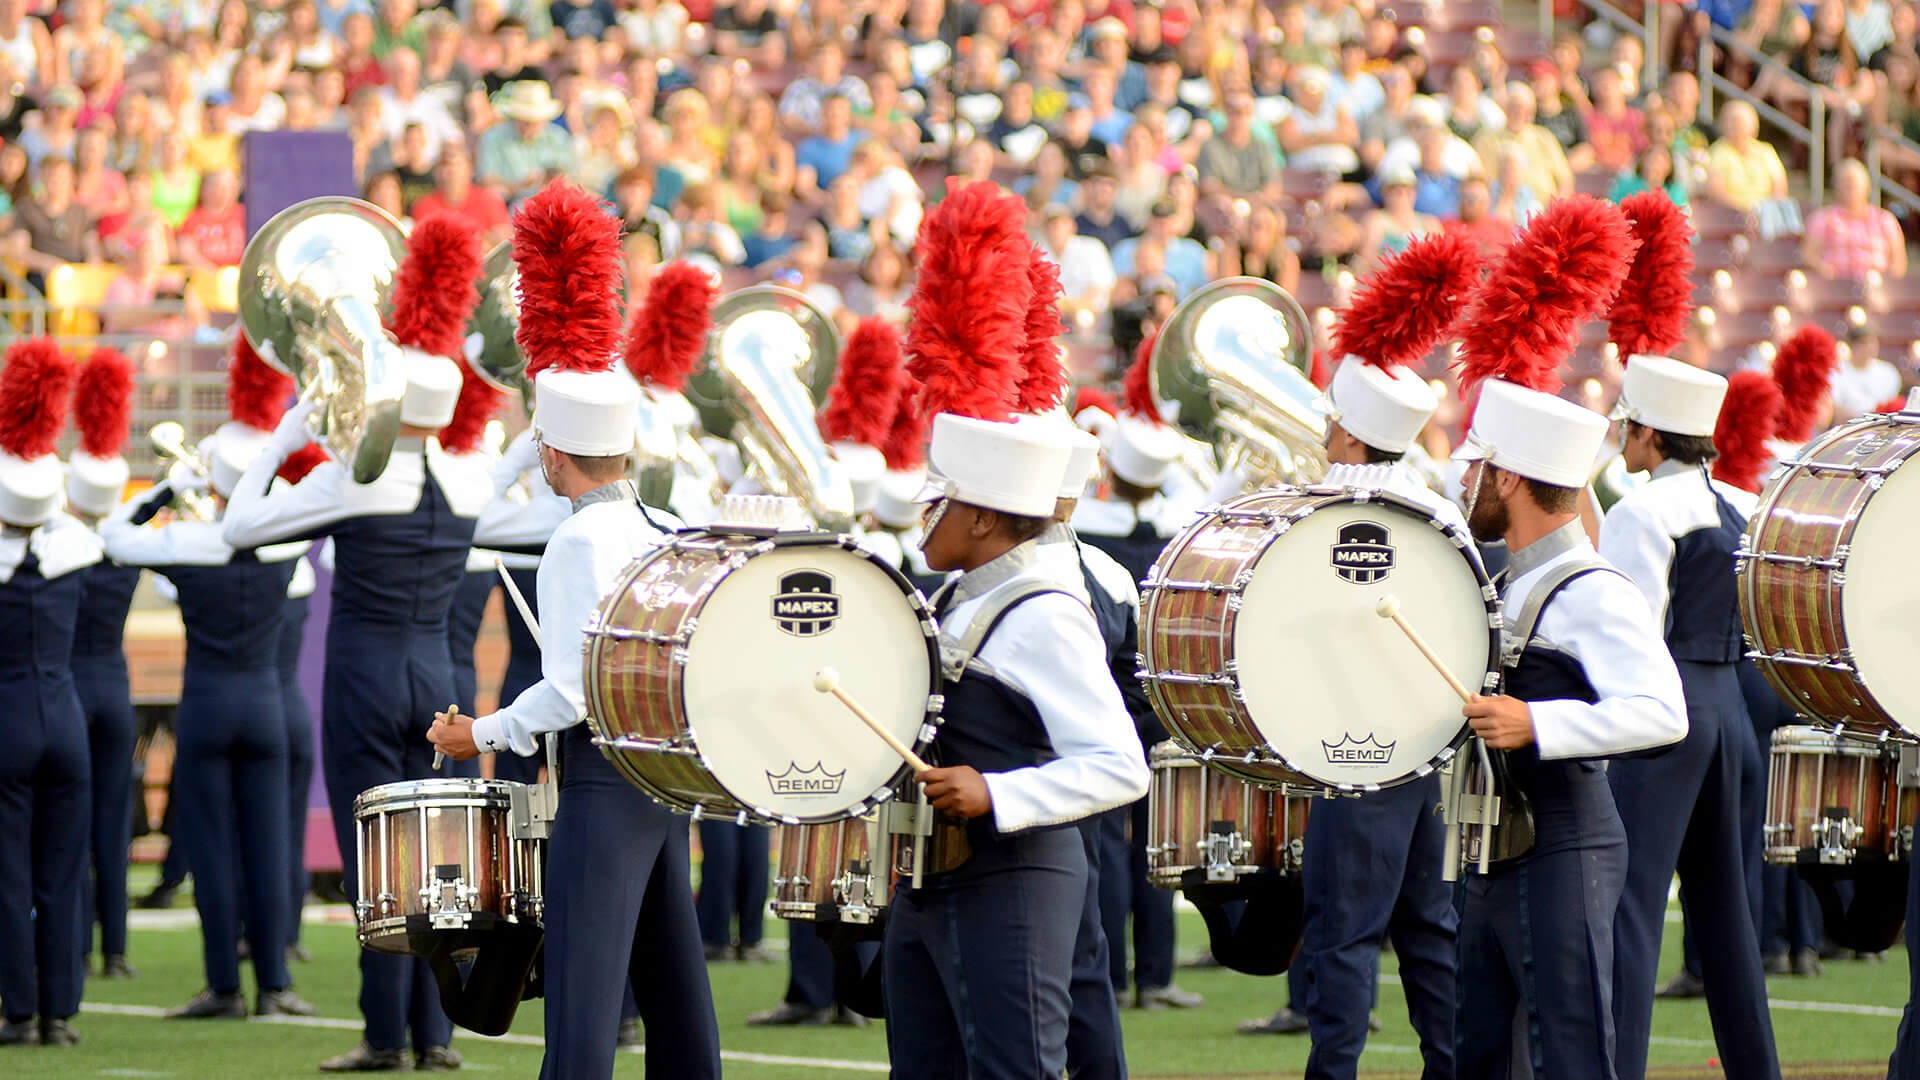 DCI Minnesota event on schedule for Saturday, July 16